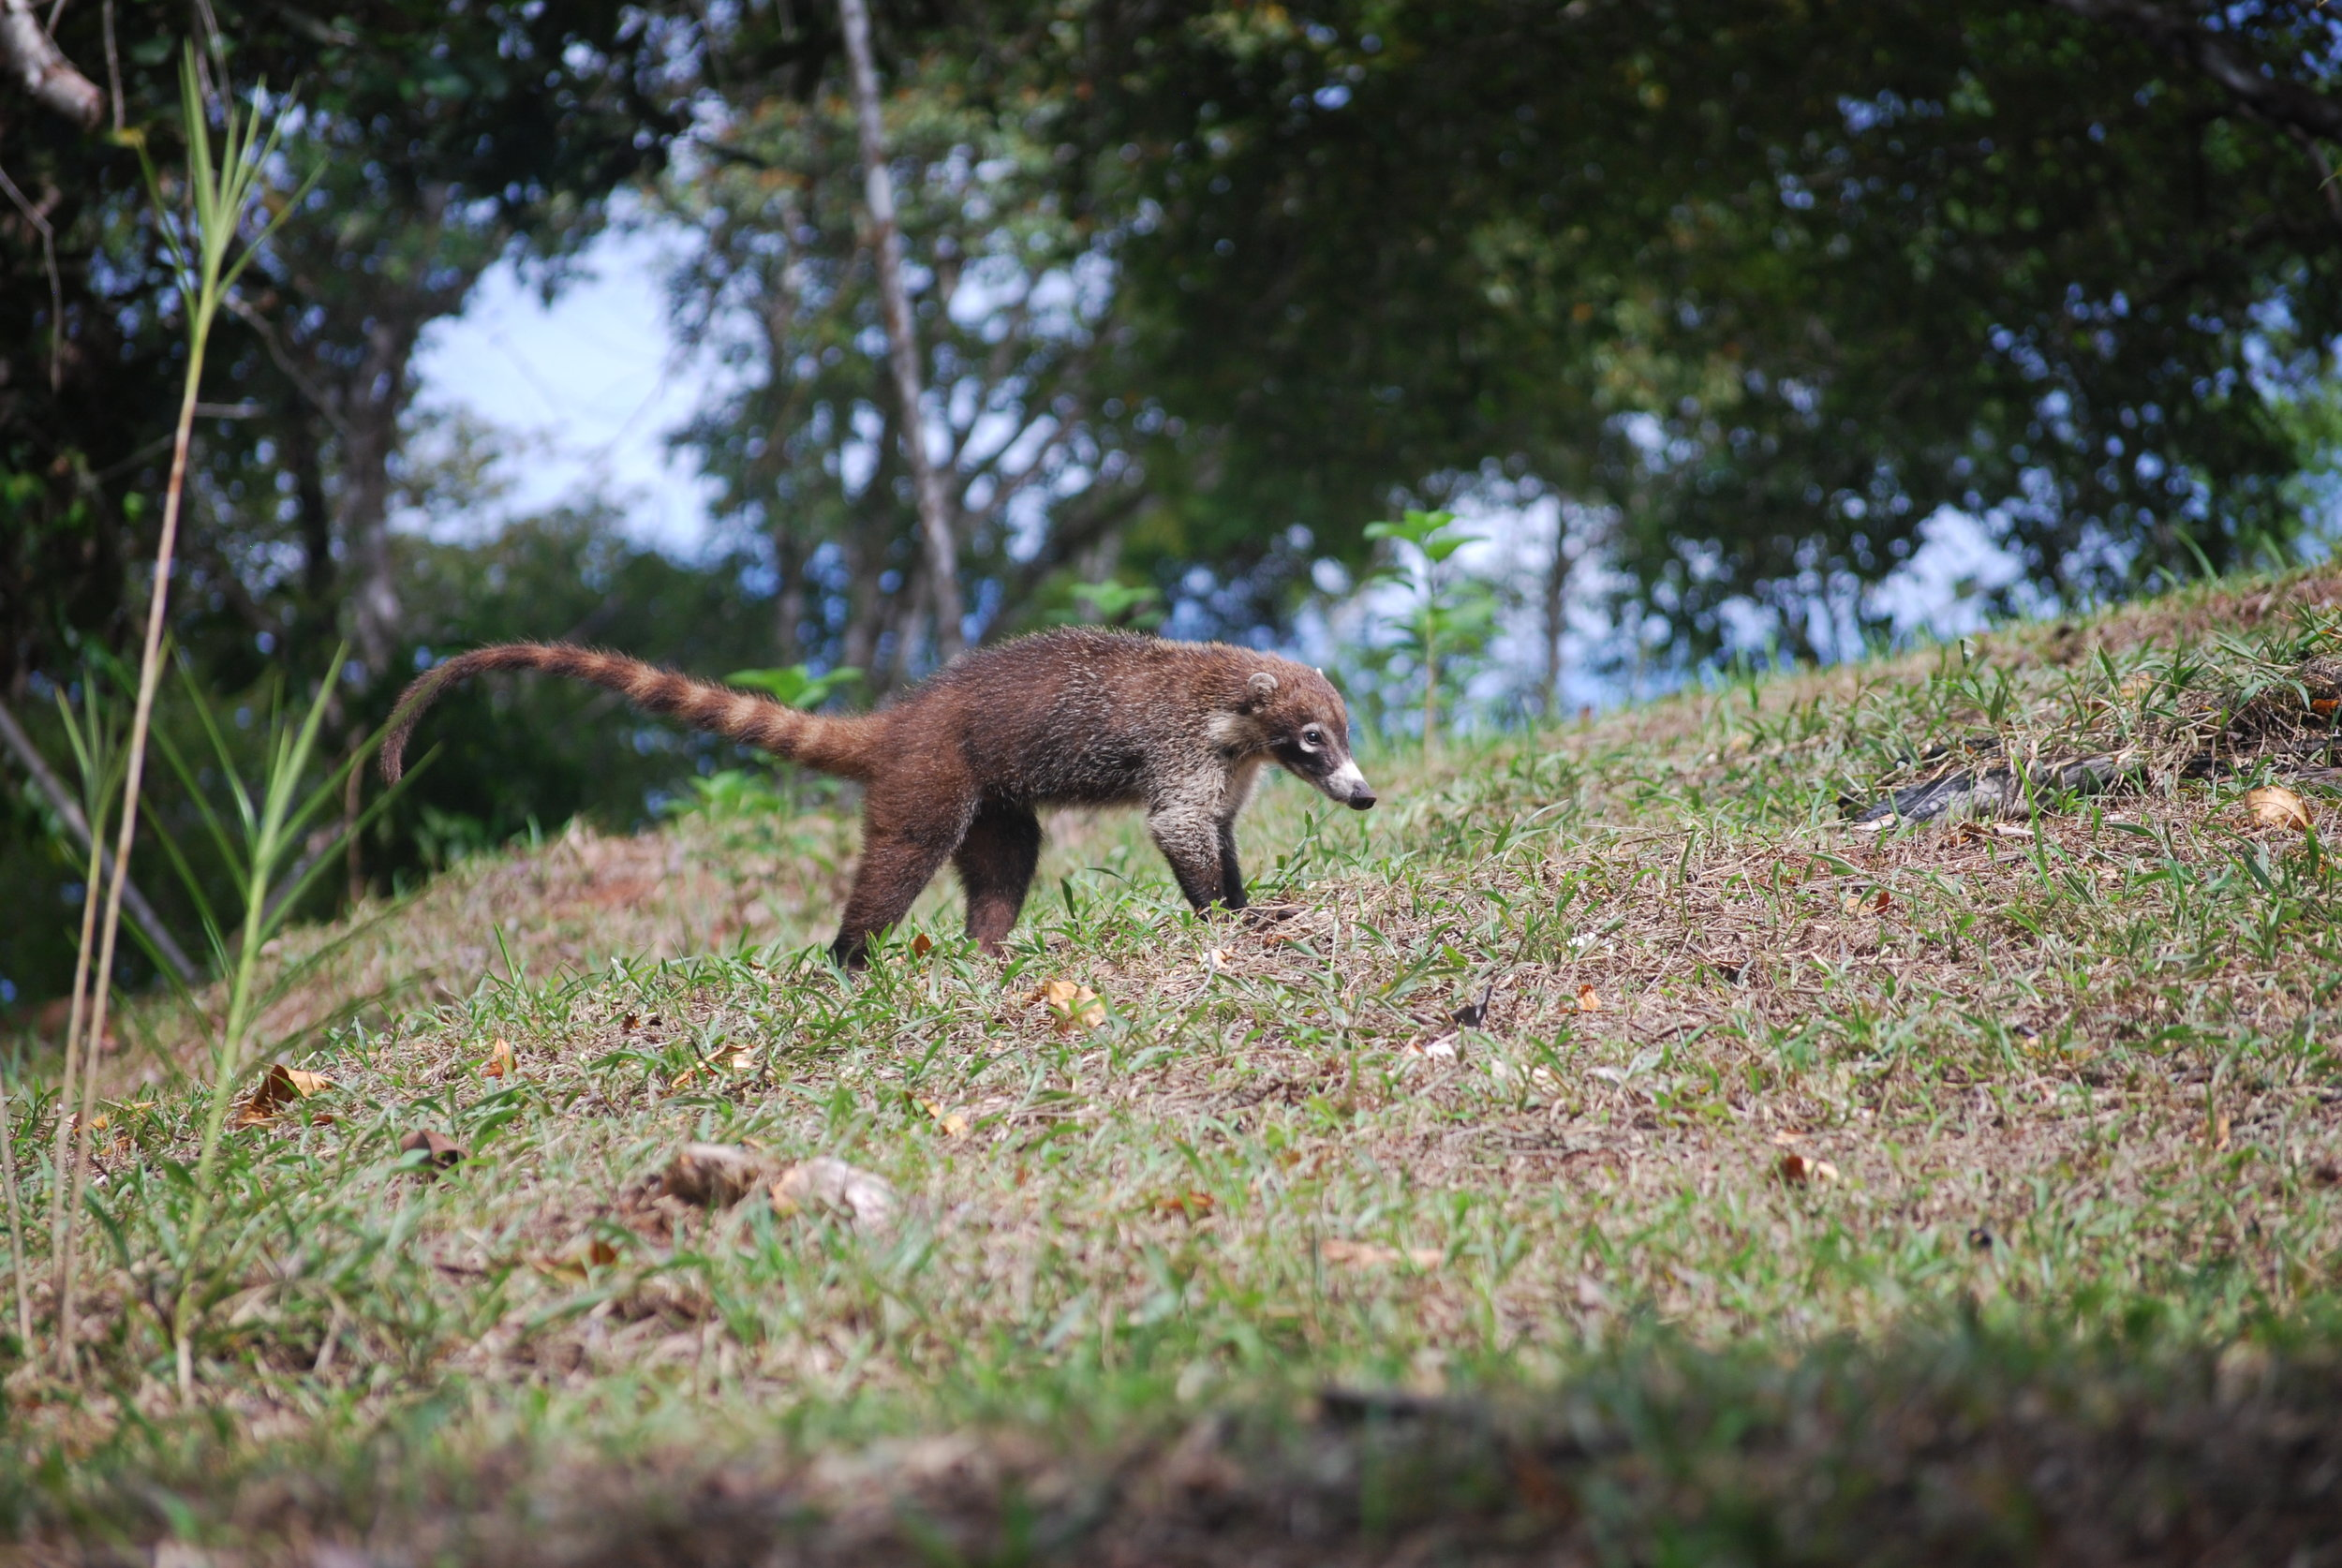 Coati -a member of the raccoon family